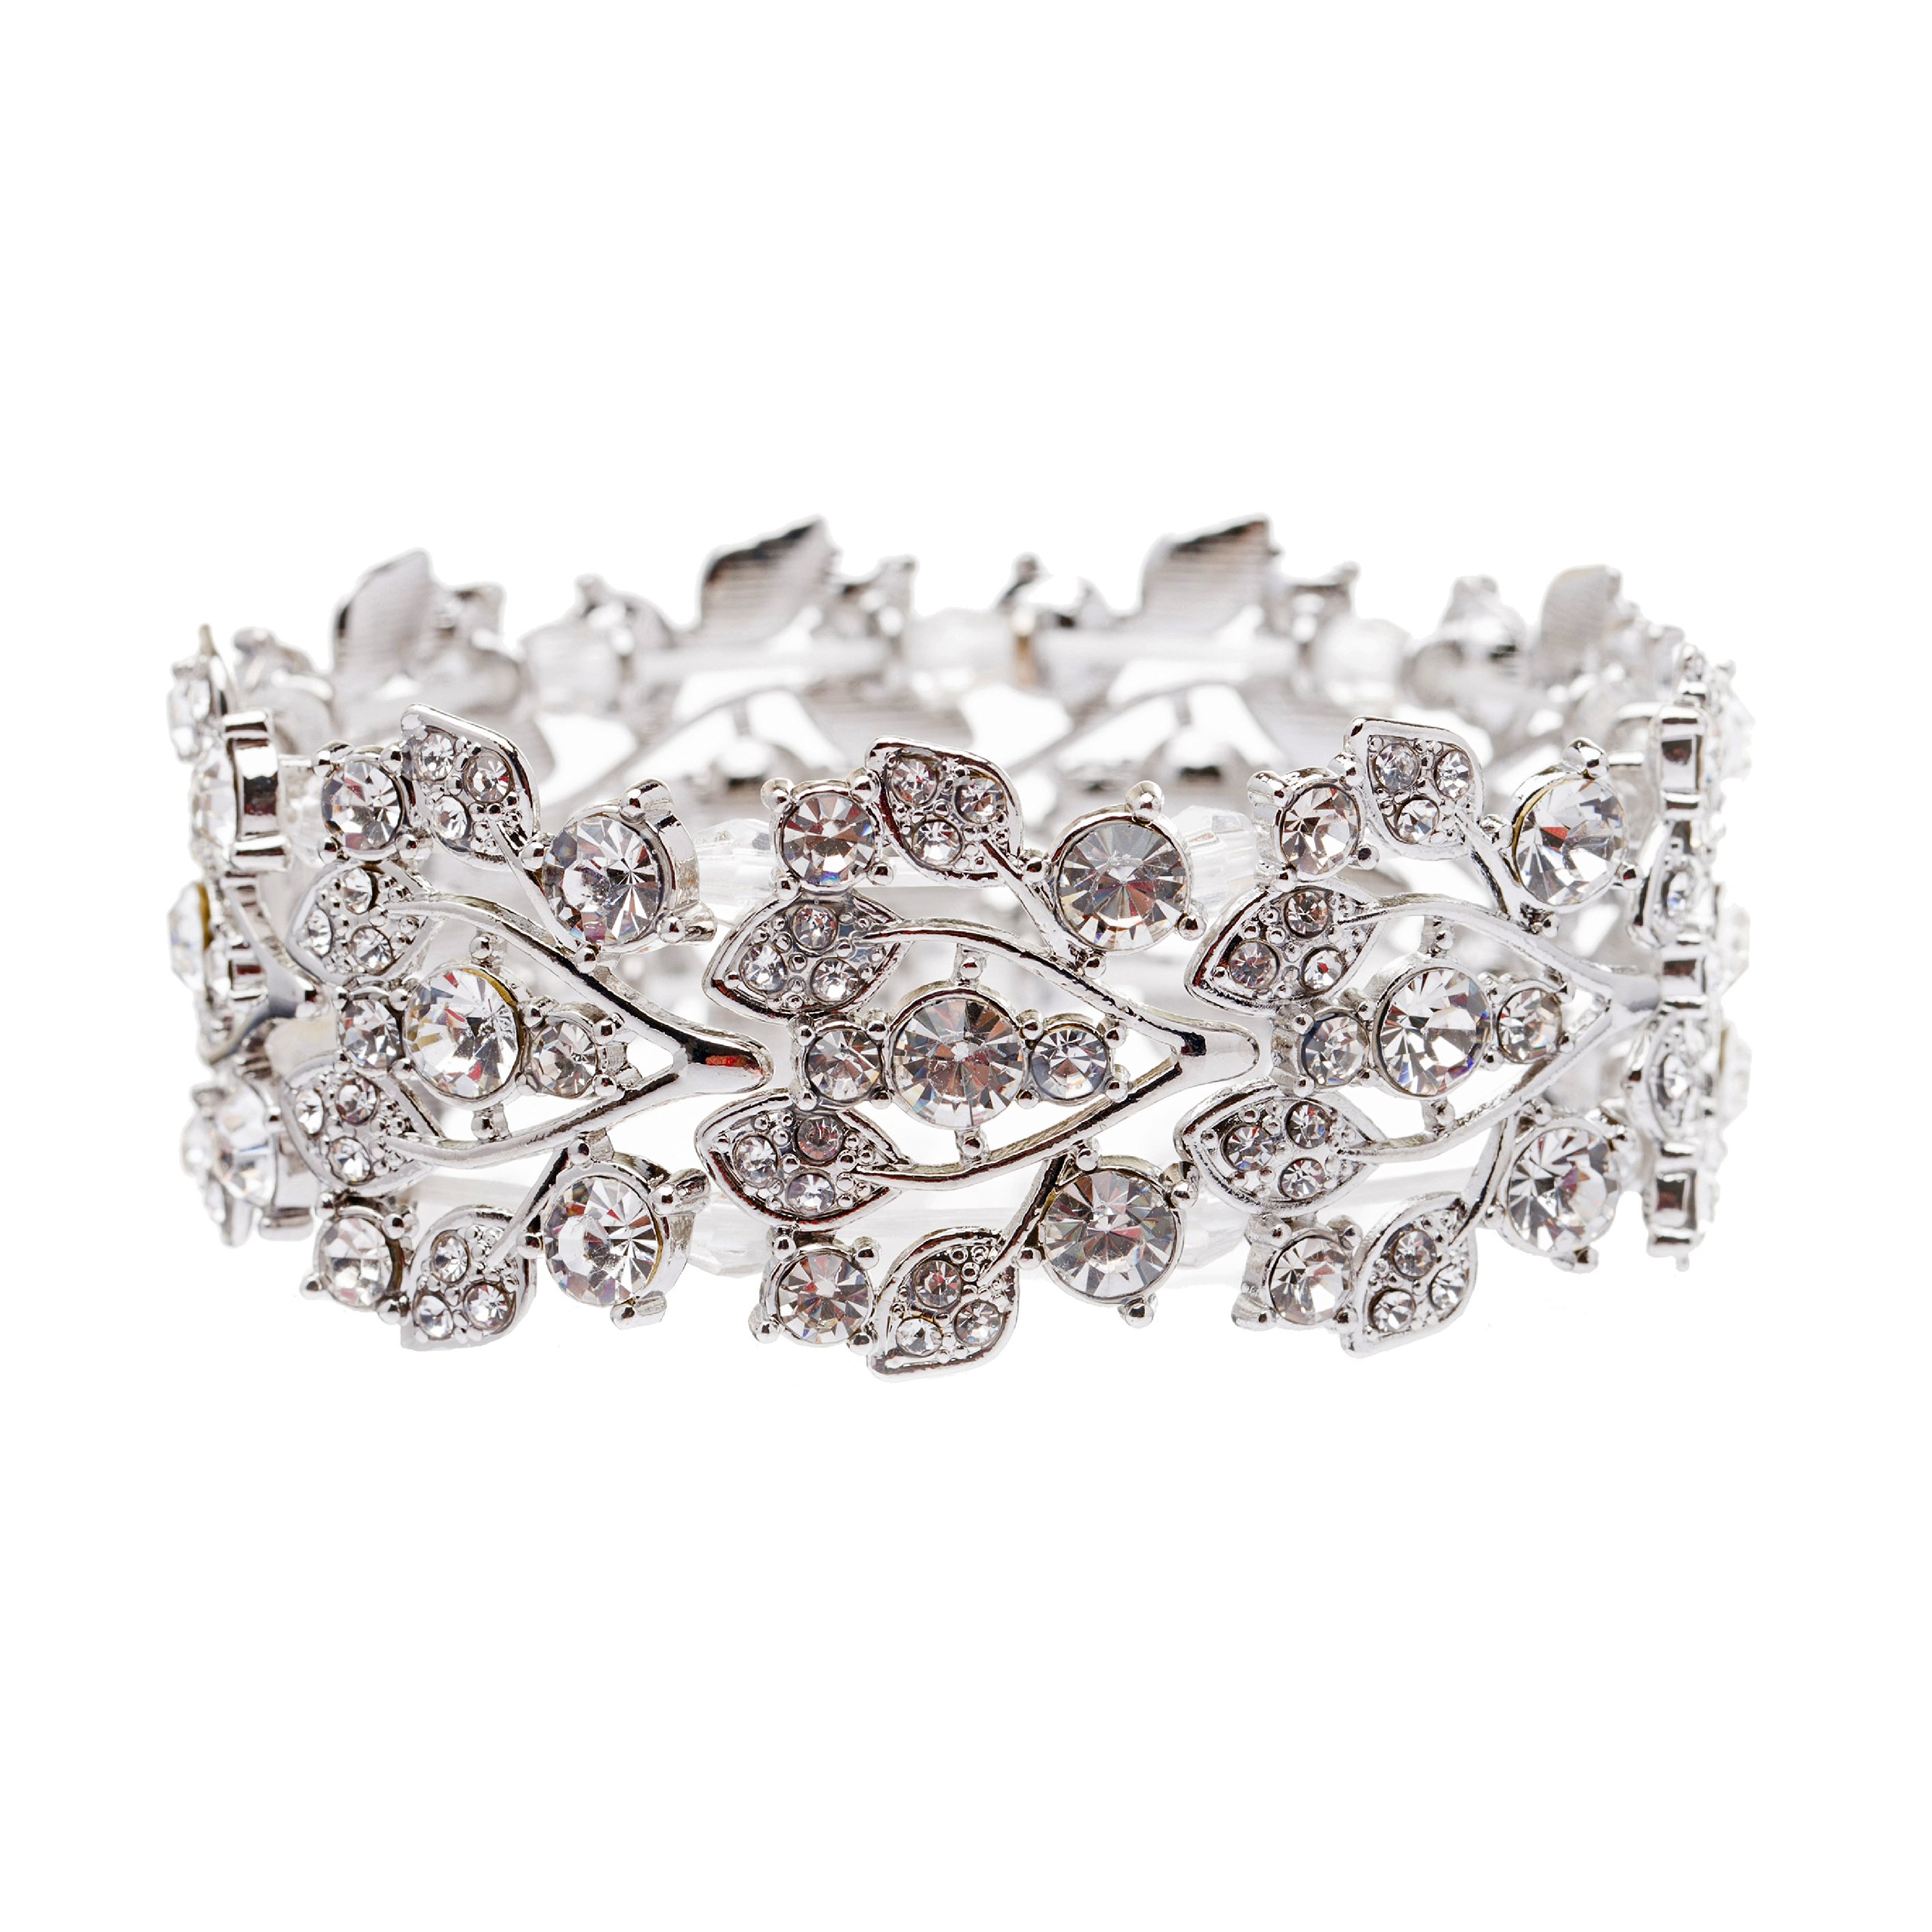 ACCESSORIESFOREVER Bridal Jewelry Crystal Rhinestone Floral Leaf Vine Stretch Bracelet Silver Clear by Accessoriesforever (Image #1)